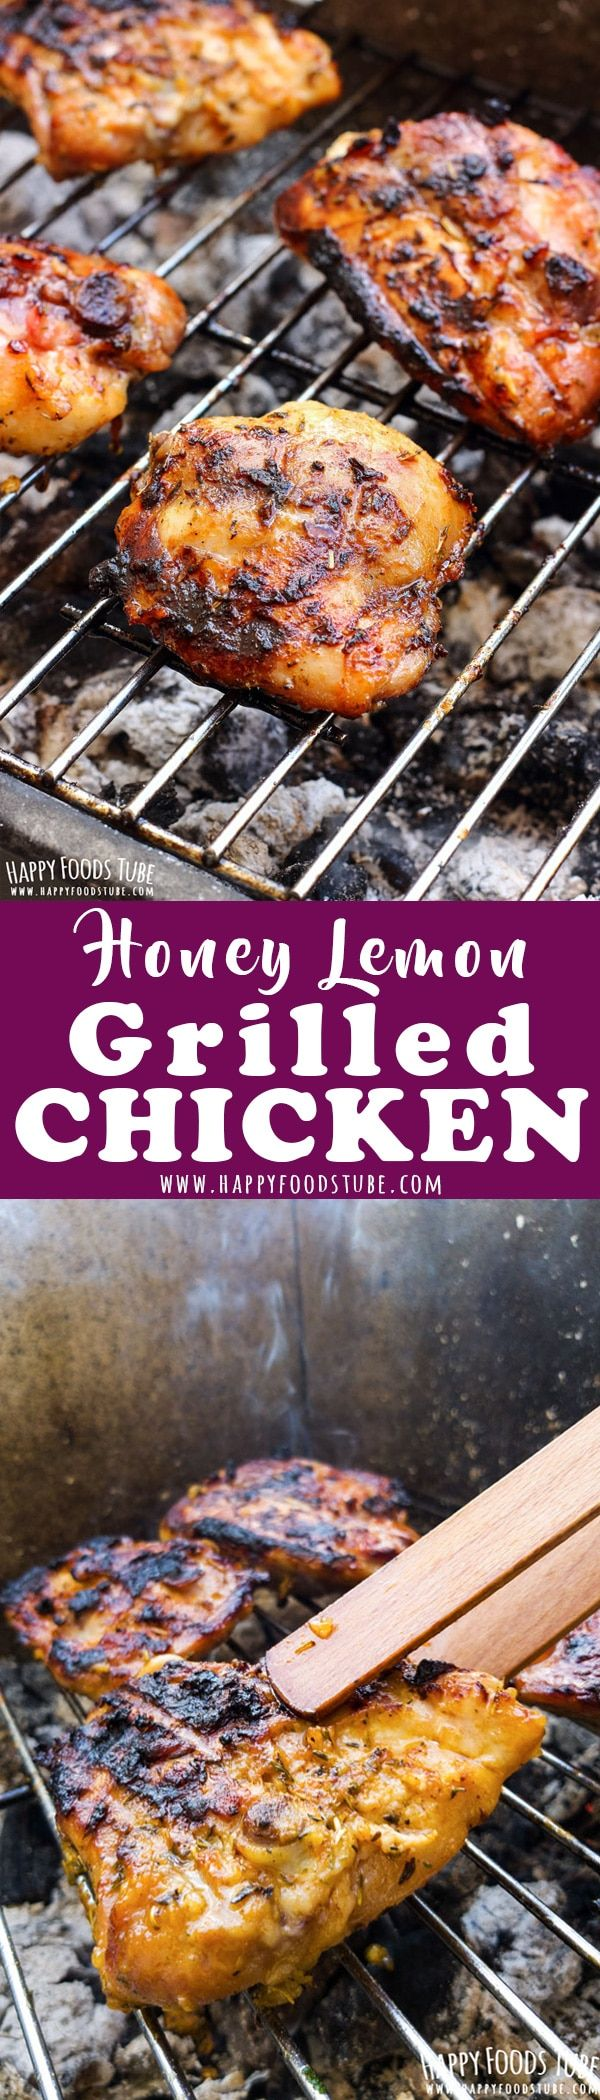 Easy honey lemon grilled chicken recipe. Chicken tights are flavored with homemade grill seasoning, marinated in honey, lemon and garlic then grilled to perfection. How to make honey grilled chicken via @happyfoodstube